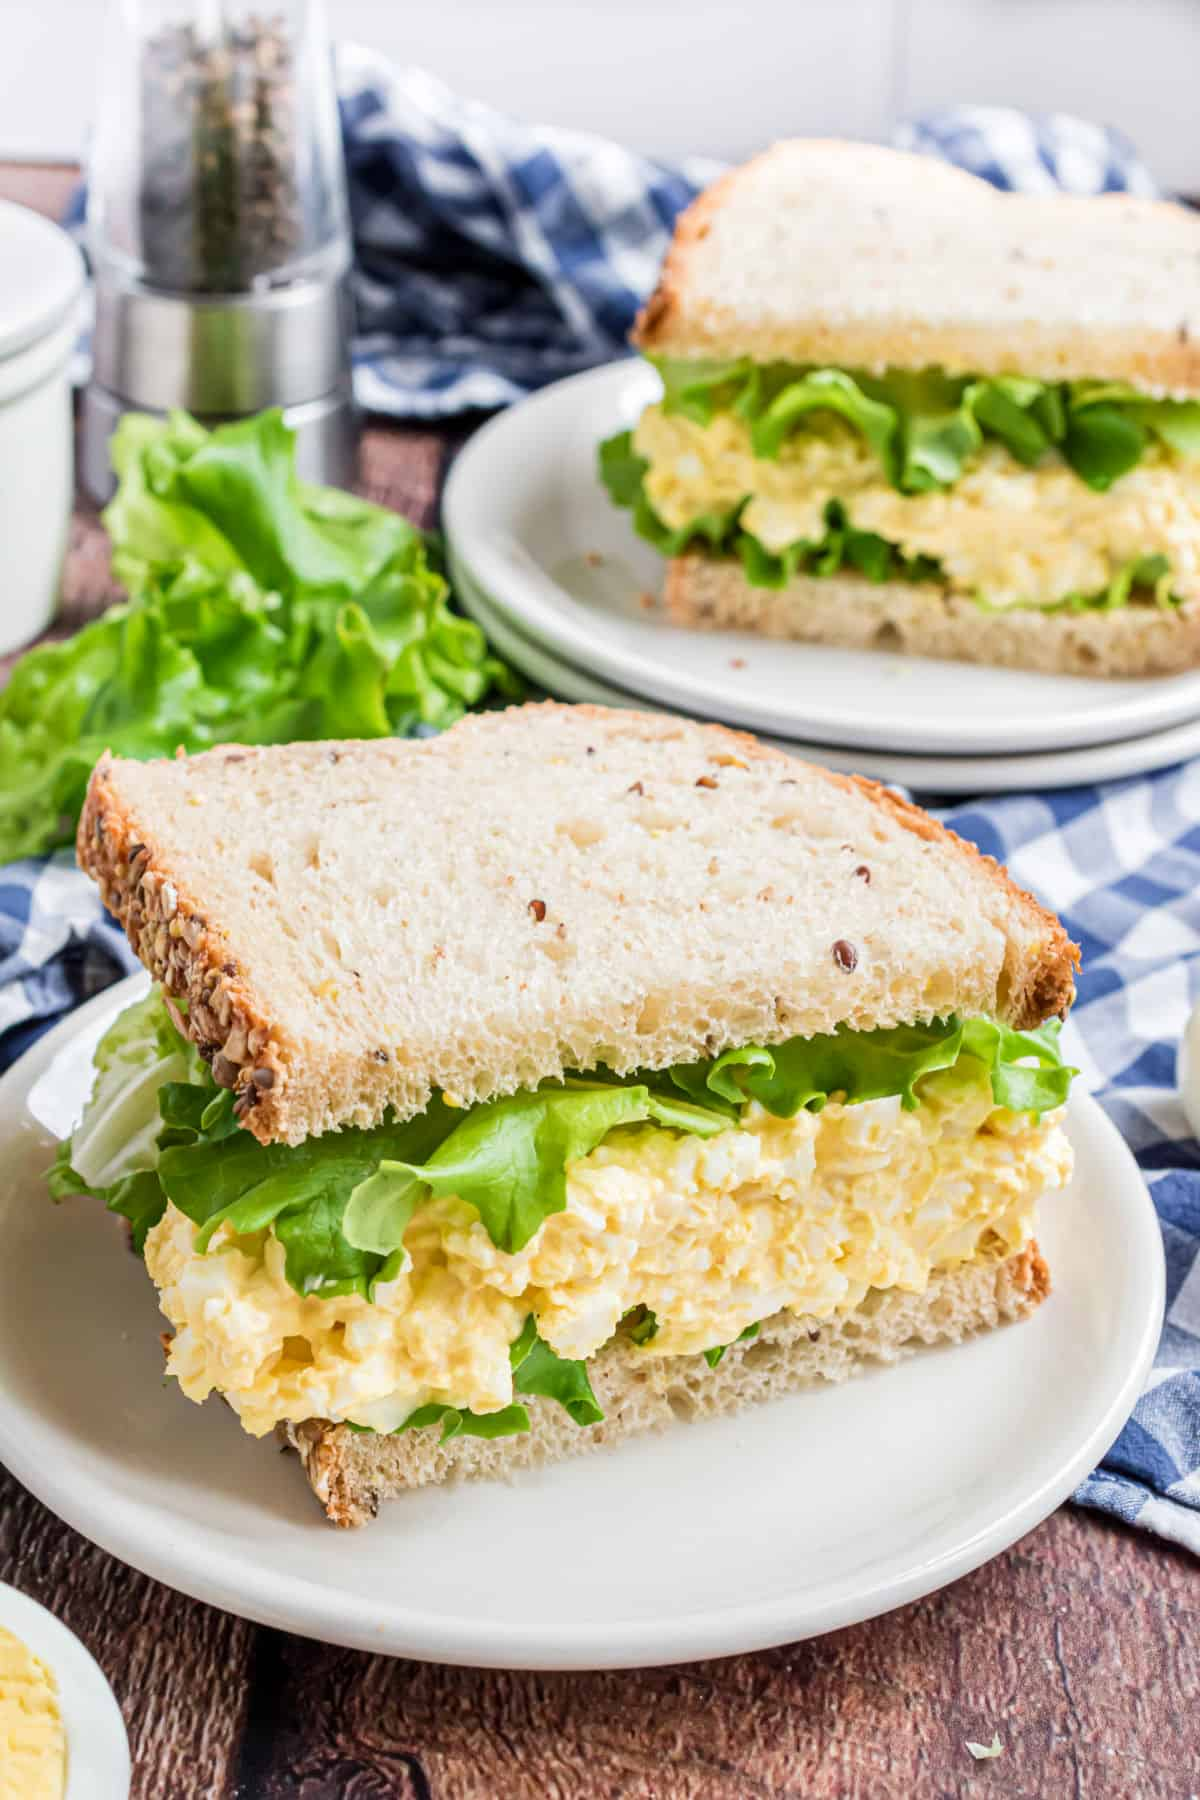 Egg salad on white bread with lettuce.